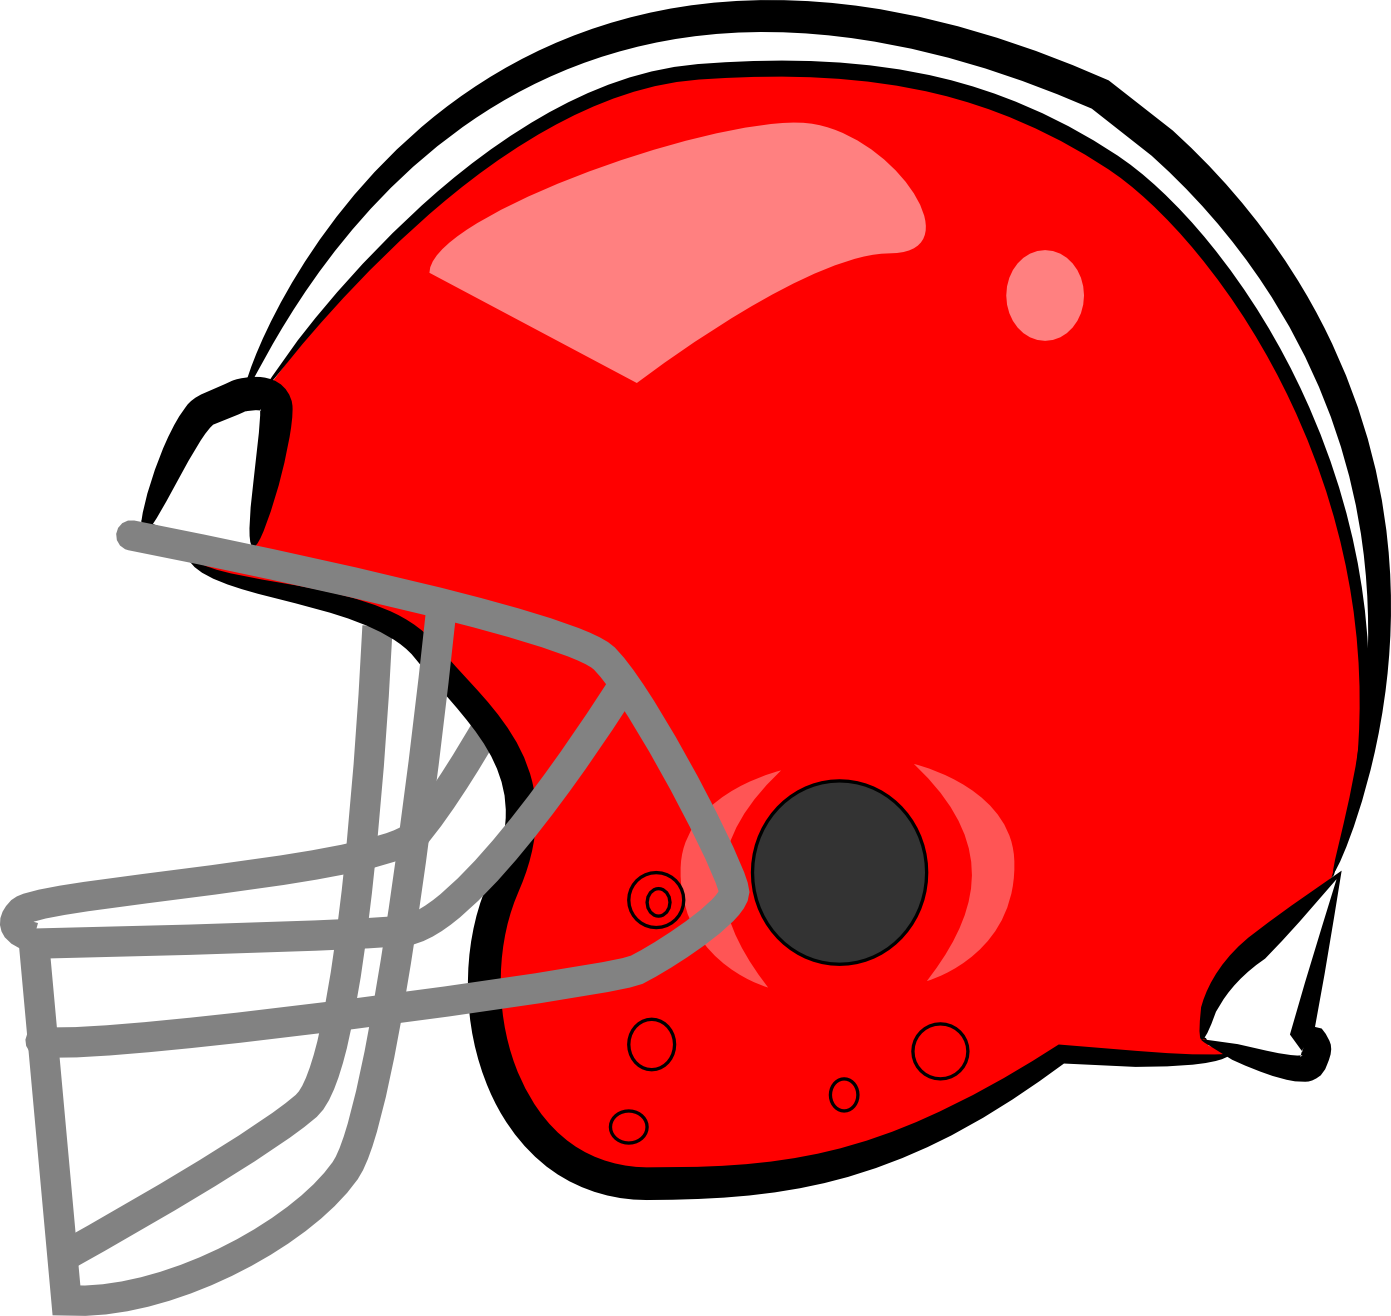 Free football jersey clipart clipart freeuse library Alabama Football Clipart at GetDrawings.com | Free for personal use ... clipart freeuse library